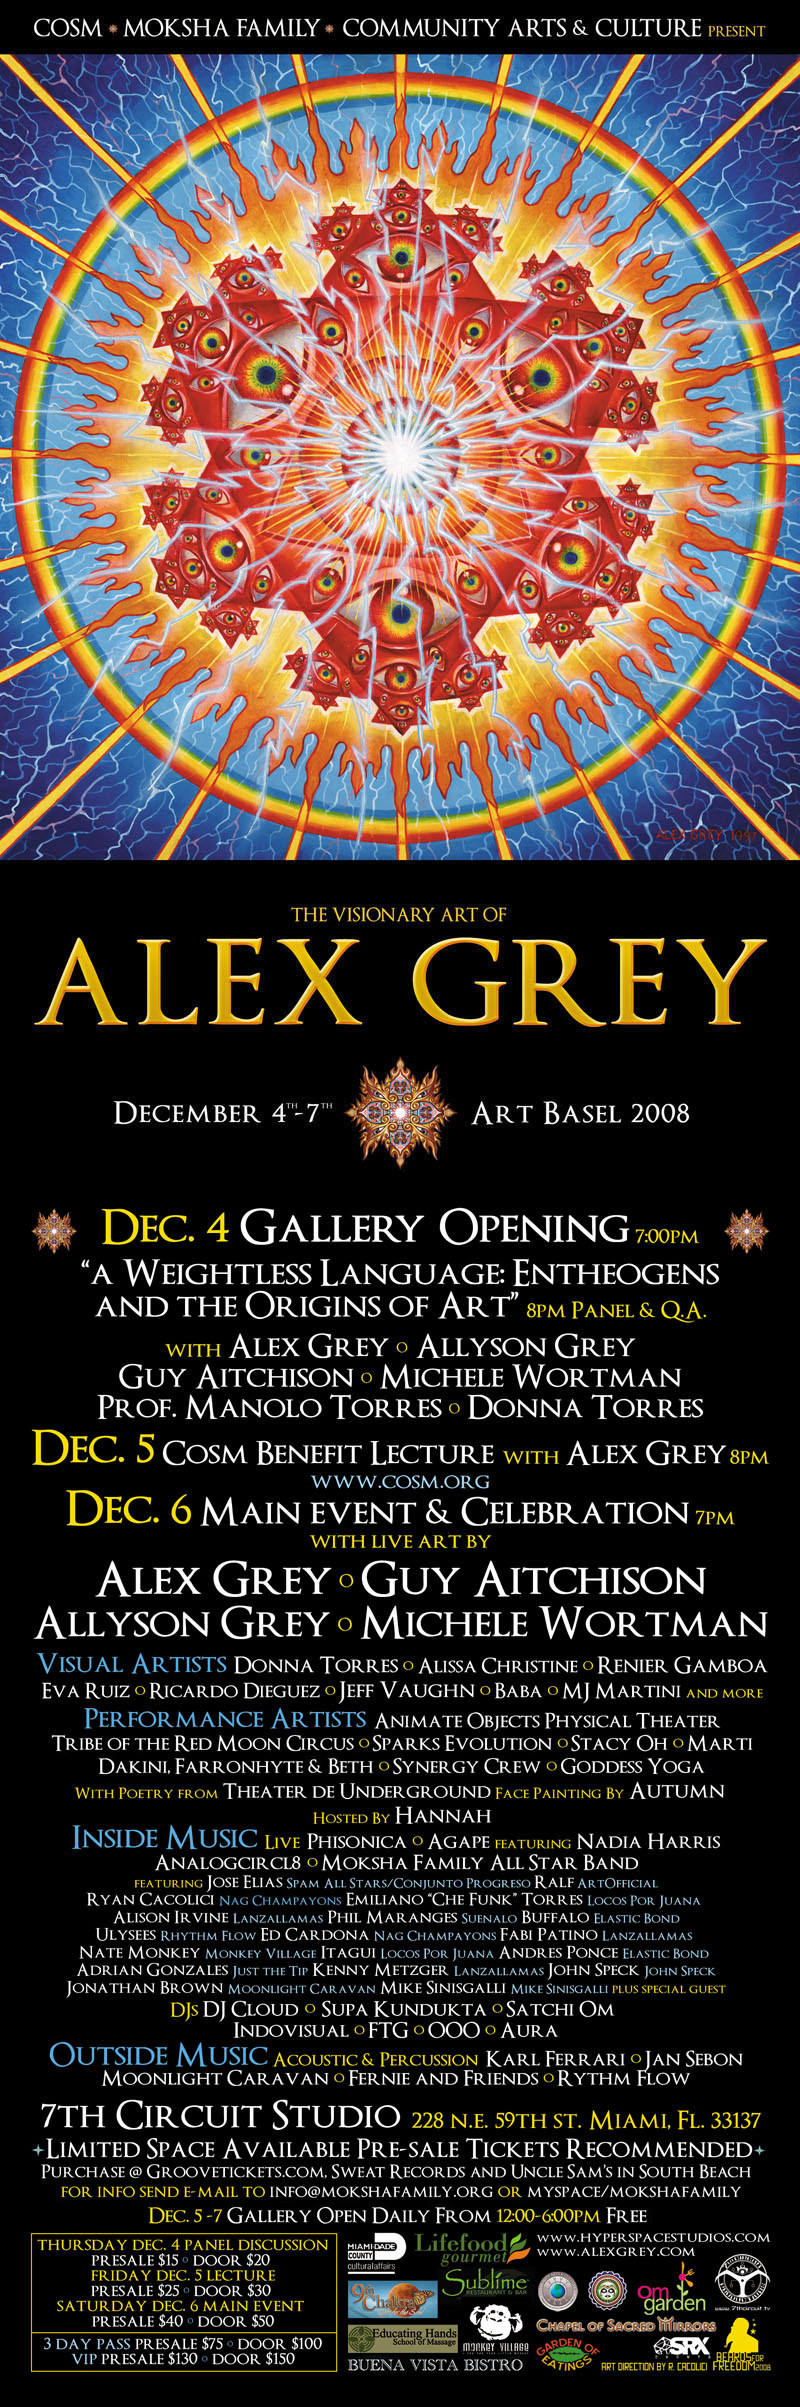 Moksha Art Fair 2008 - Featuring Aley Grey